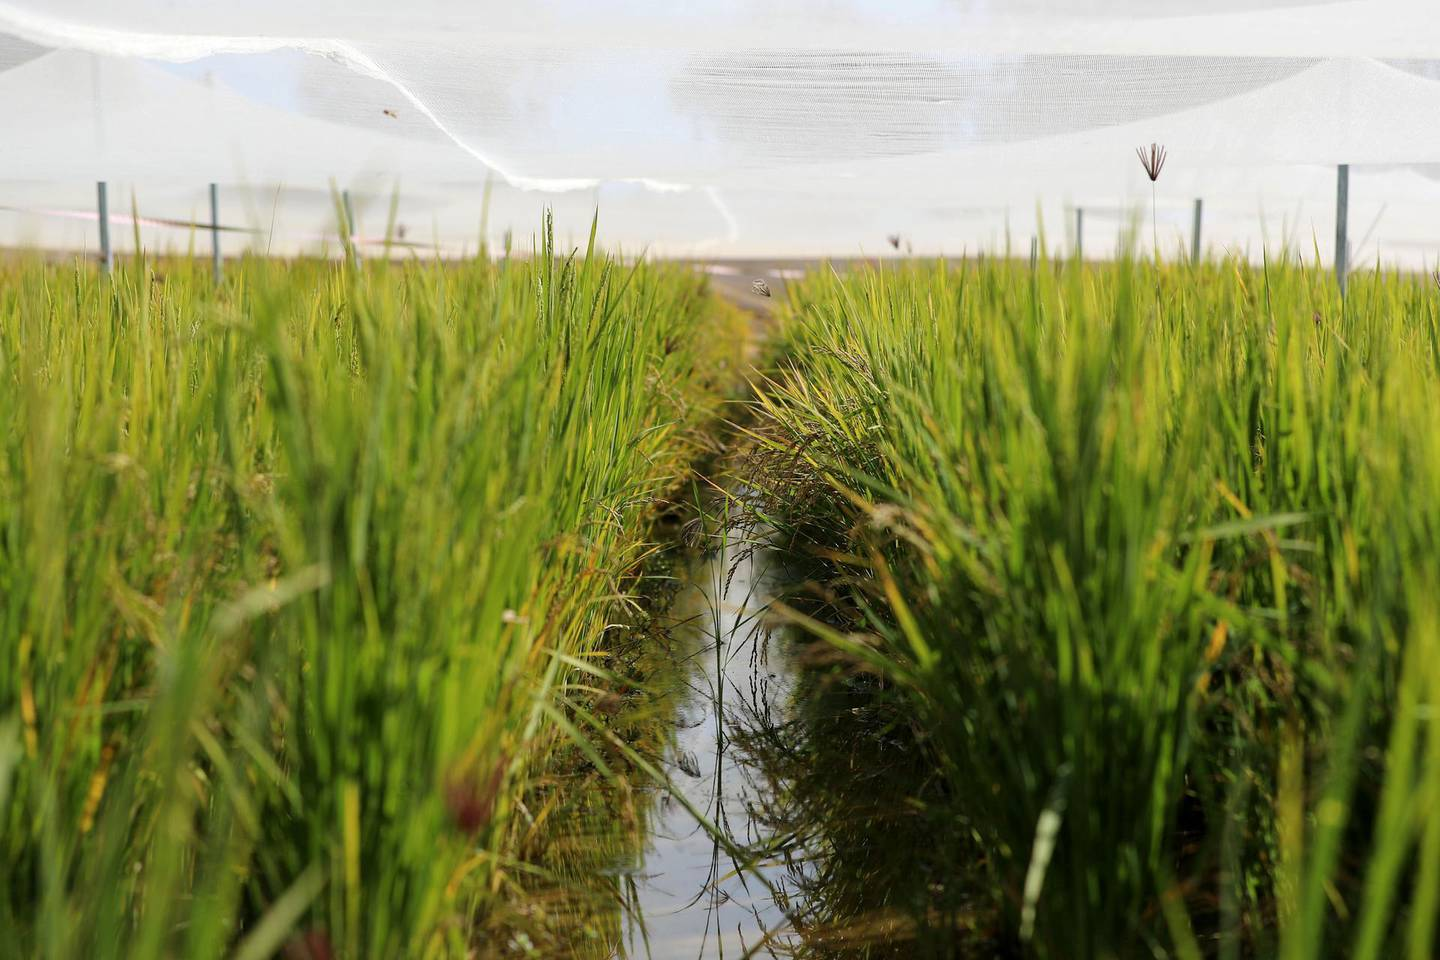 Sharjah, United Arab Emirates - Reporter: Sarwat Nasir. News. Food. Rice plants are planted in a flooded cannel at a rice farm, as part of research by the ministry to enhance UAEÕs food security. Sharjah. Monday, January 11th, 2021. Chris Whiteoak / The National